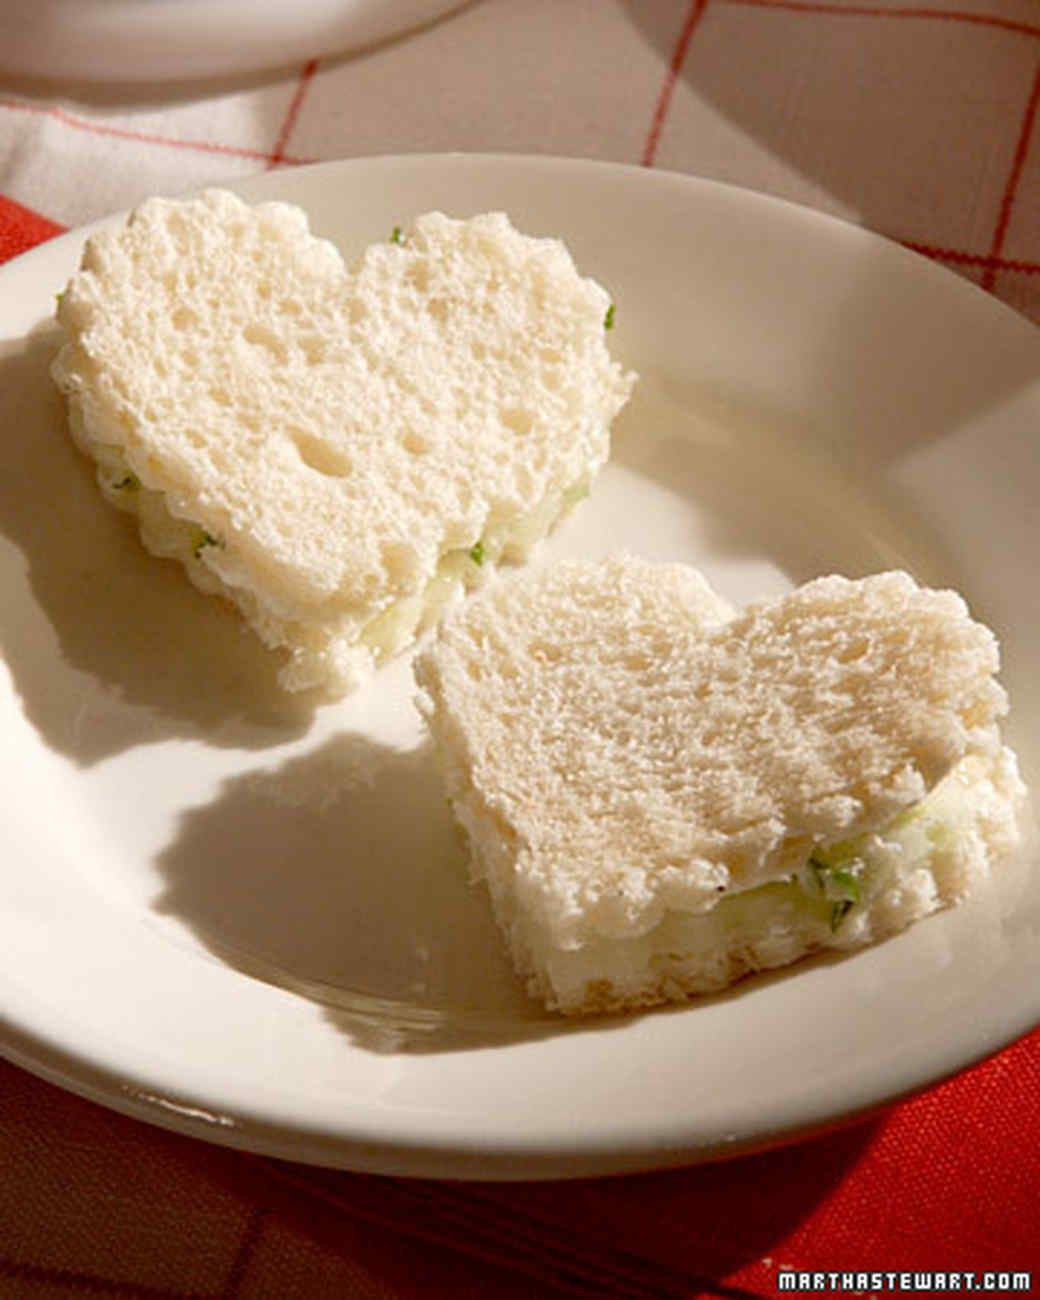 Cucumber-Turkey Mini Sandwiches | Martha Stewart Living - These cucumber-turkey mini sandwiches are so easy, the little ones can even help make them. To make these even more special, use a cookie cutter to stamp them into heart shapes.